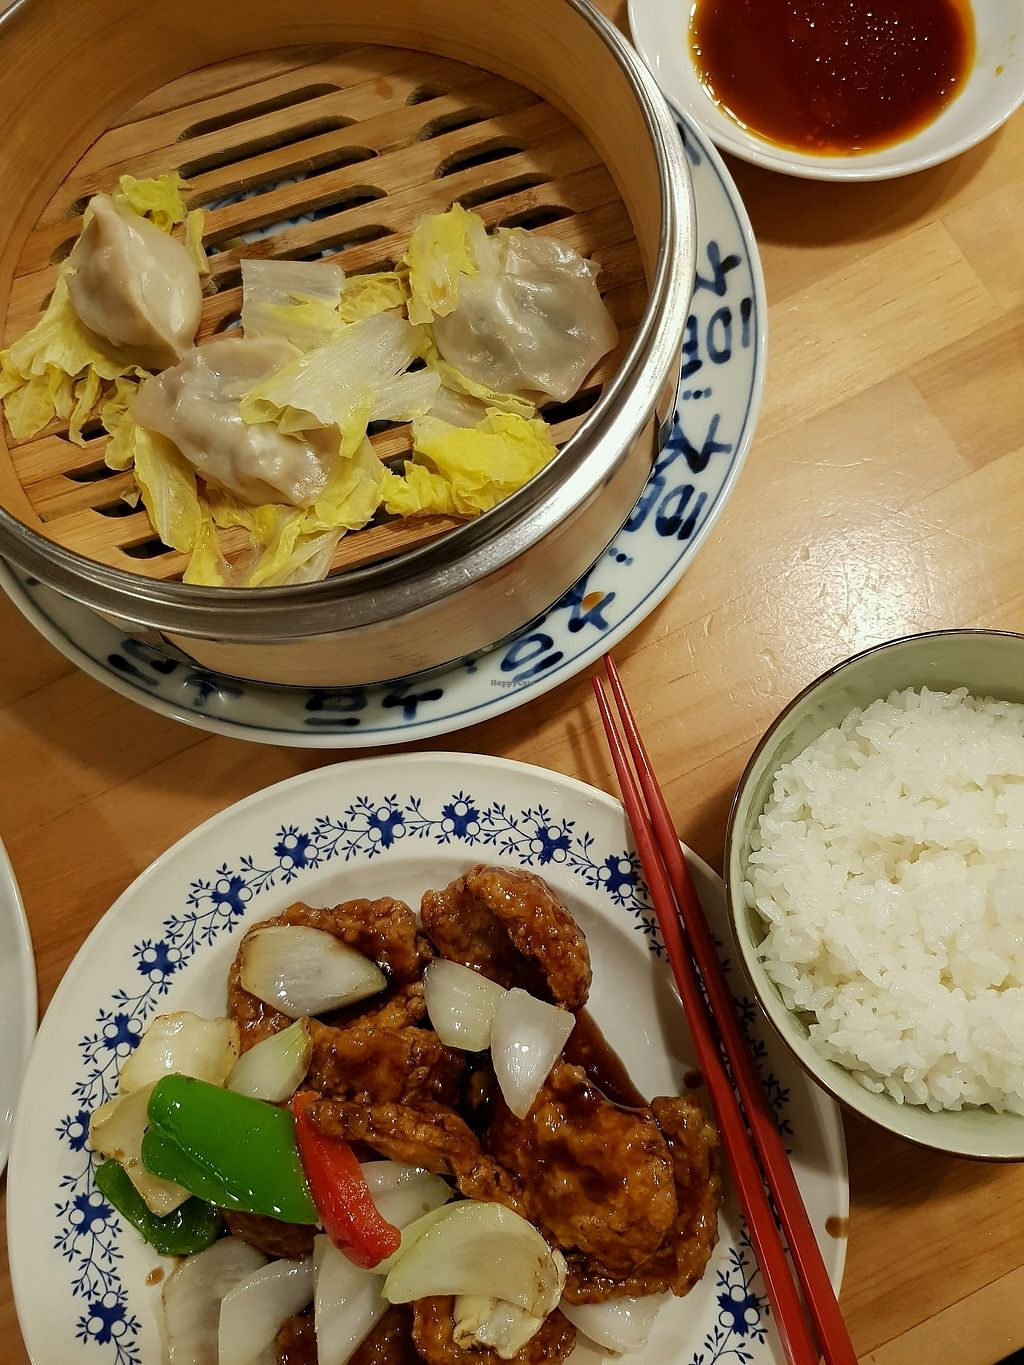 "Photo of Lo Fuo  by <a href=""/members/profile/DebContemprato"">DebContemprato</a> <br/>sweet and sour soy meat & veggie dumplings <br/> April 2, 2018  - <a href='/contact/abuse/image/46161/379828'>Report</a>"